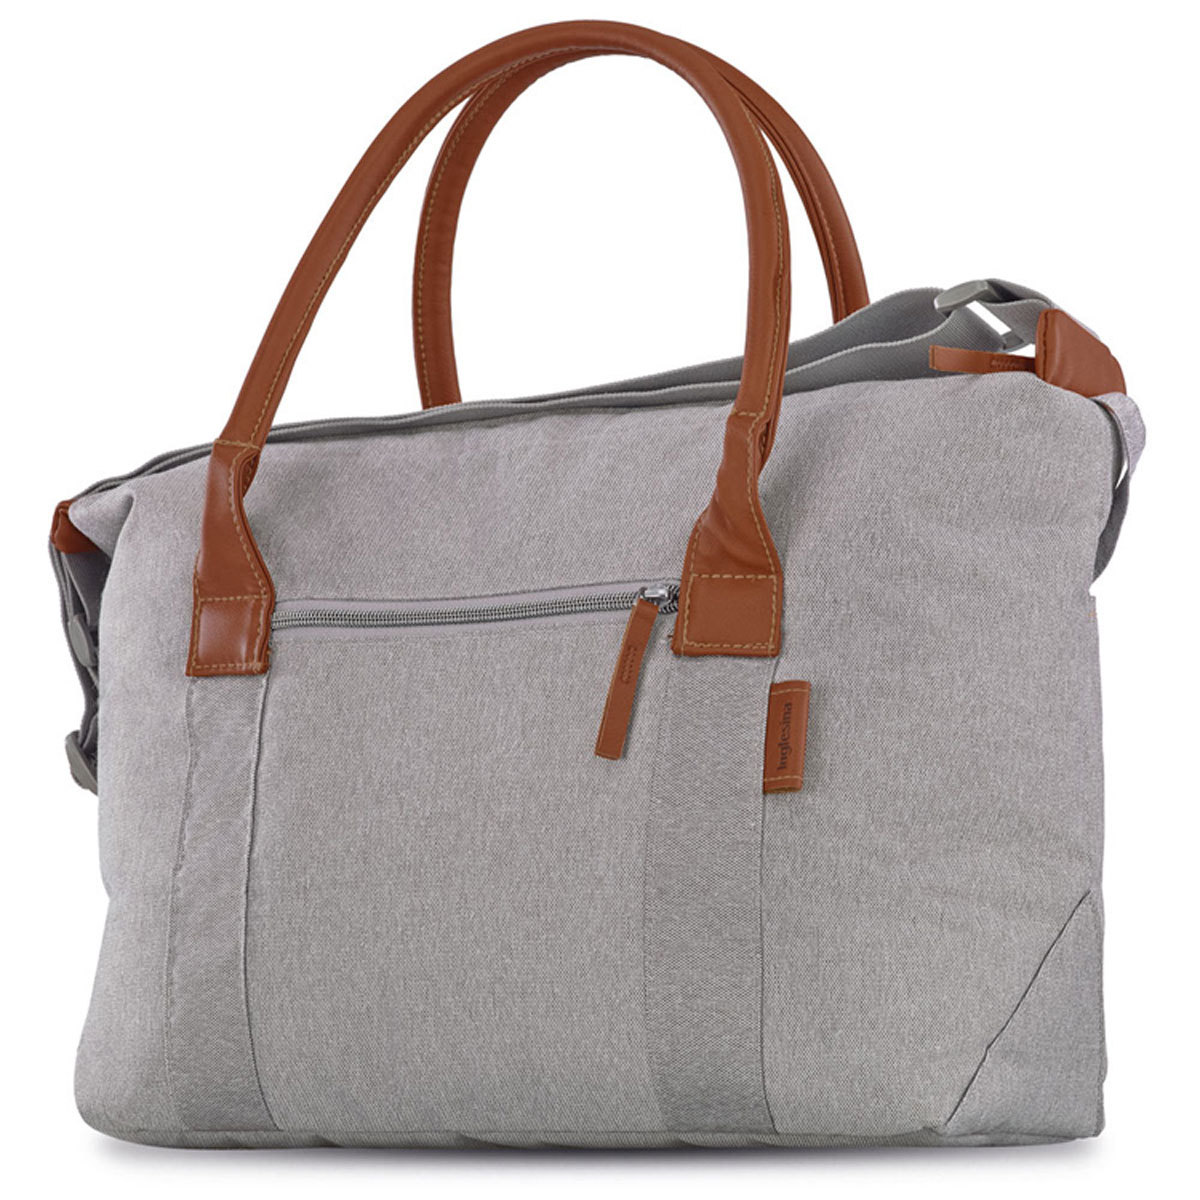 Sac à langer Sac à Langer Quad Day - Derby Grey Sac à Langer Quad Day - Derby Grey